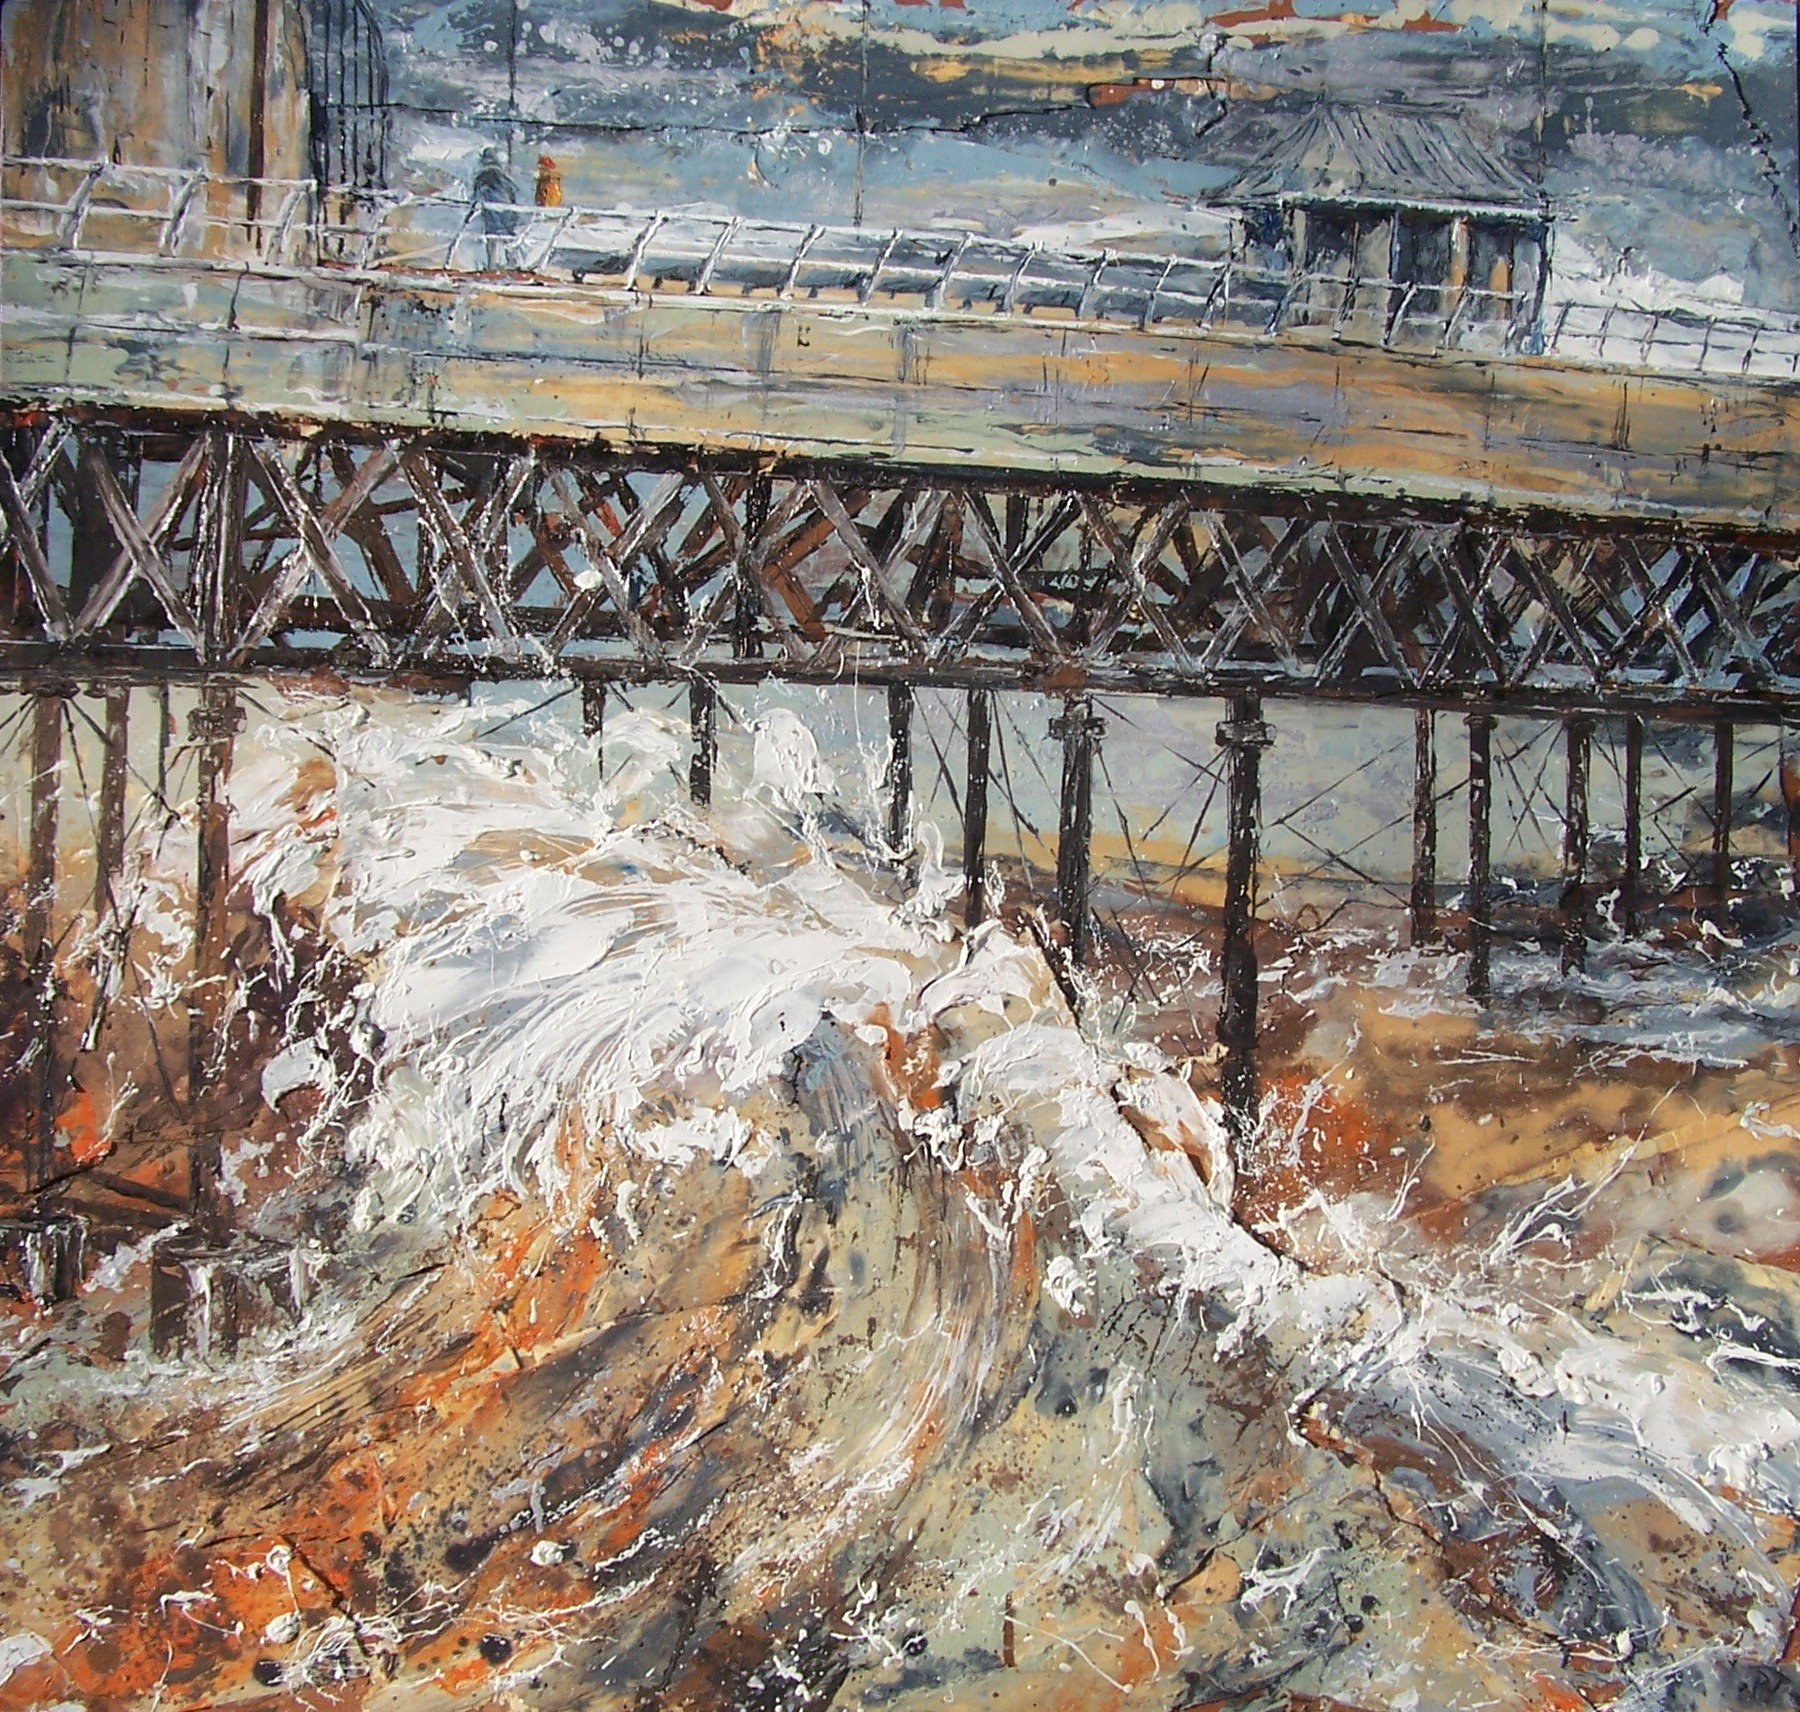 Cromer Pier 2, Oil on wood